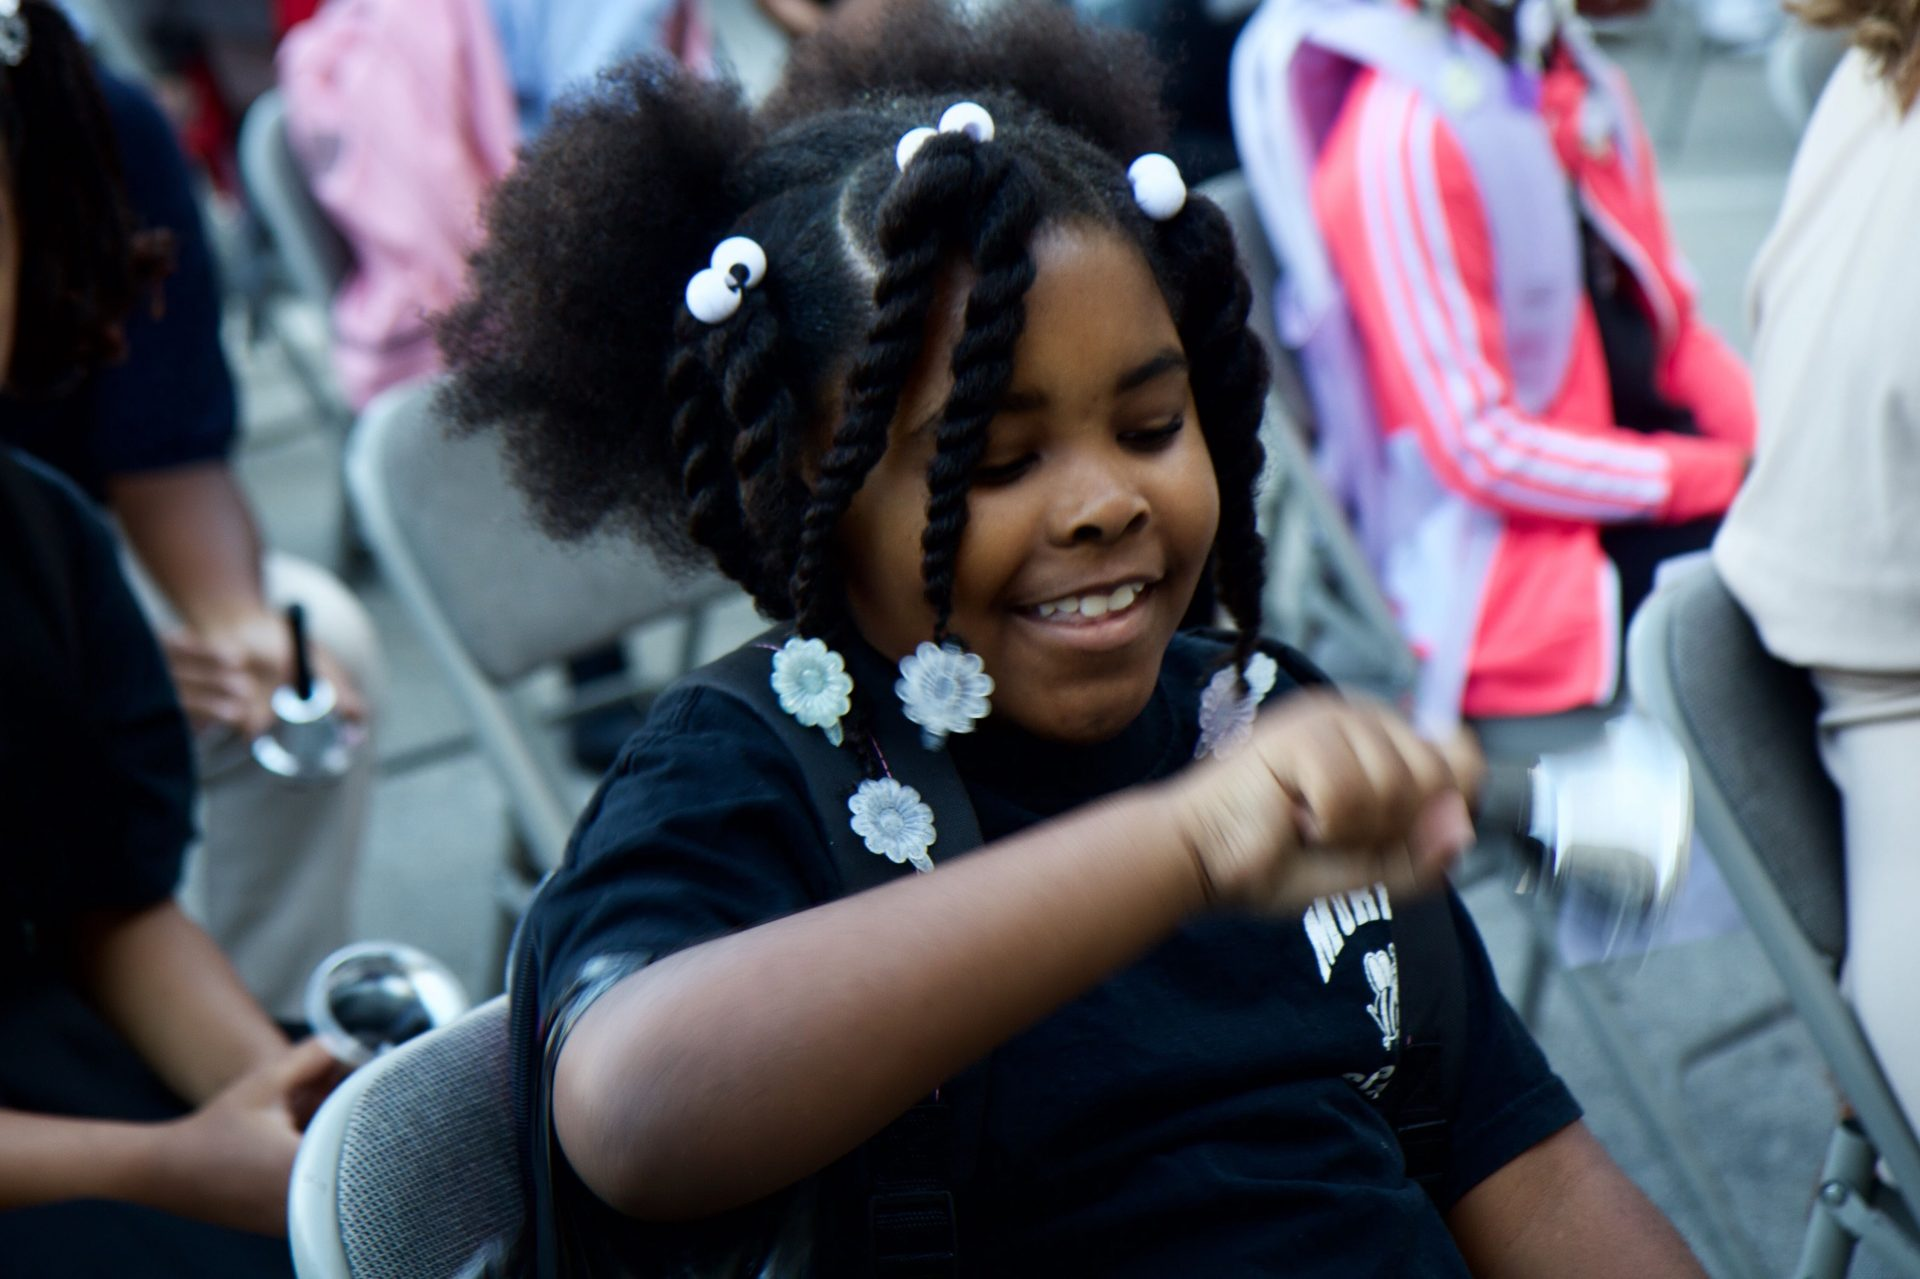 2nd grader Navayah Reynolds rings in the new school year at the 2019 start of school bell ringing ceremony in Philadelphia.